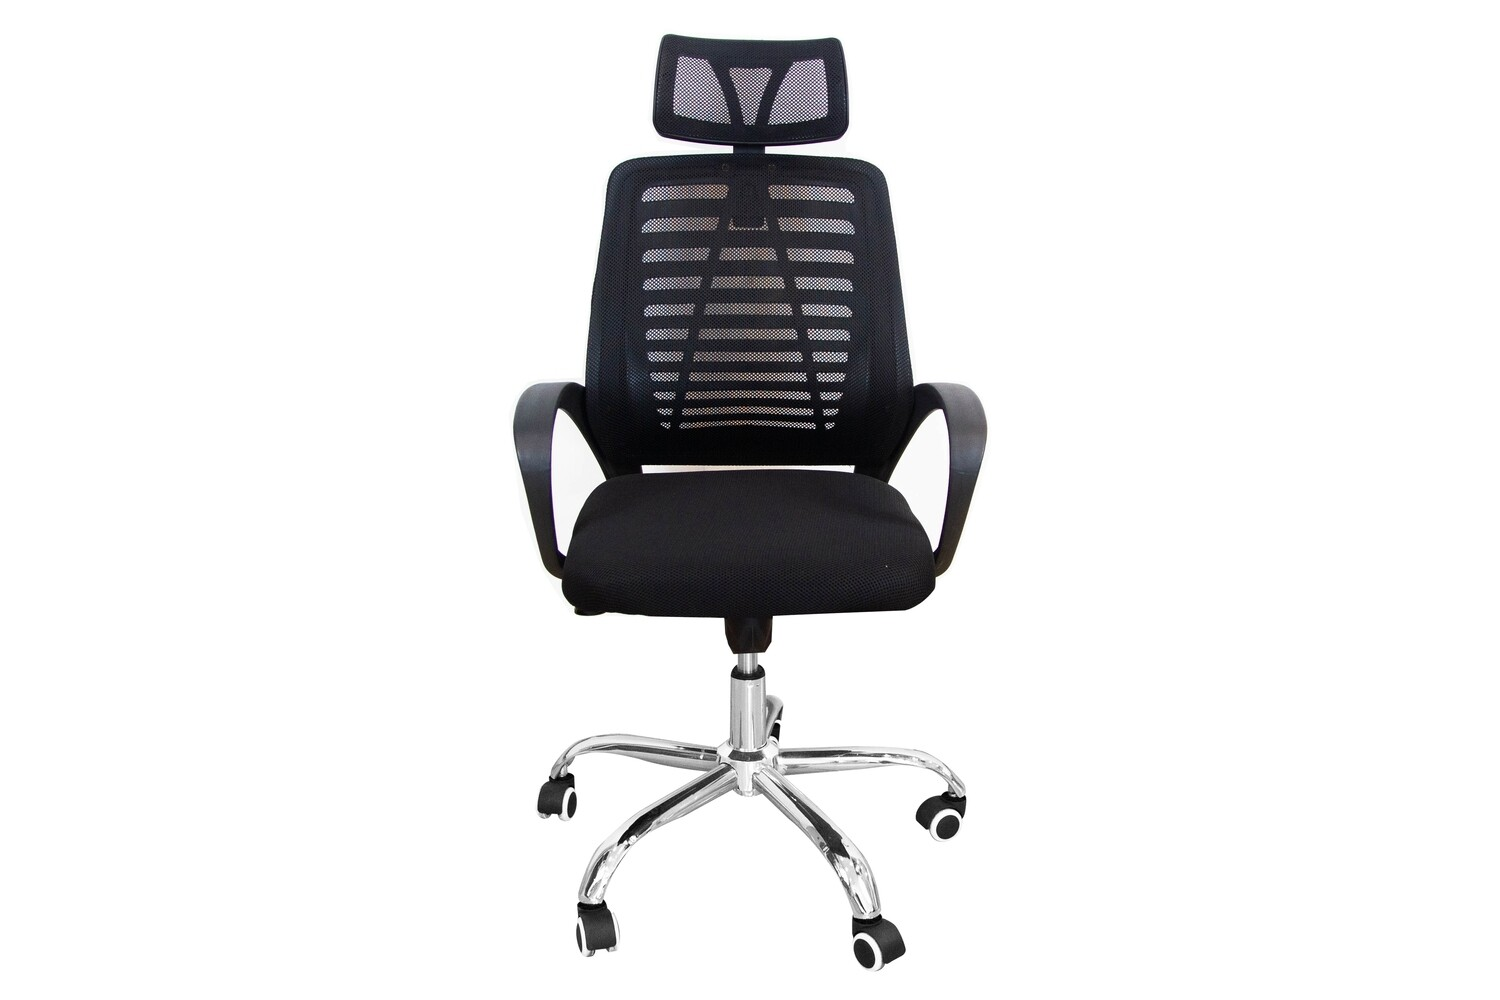 Ofix Deluxe-43 High Back Mesh Office Chair (Color: Black, Red, Grey, White+Pink)